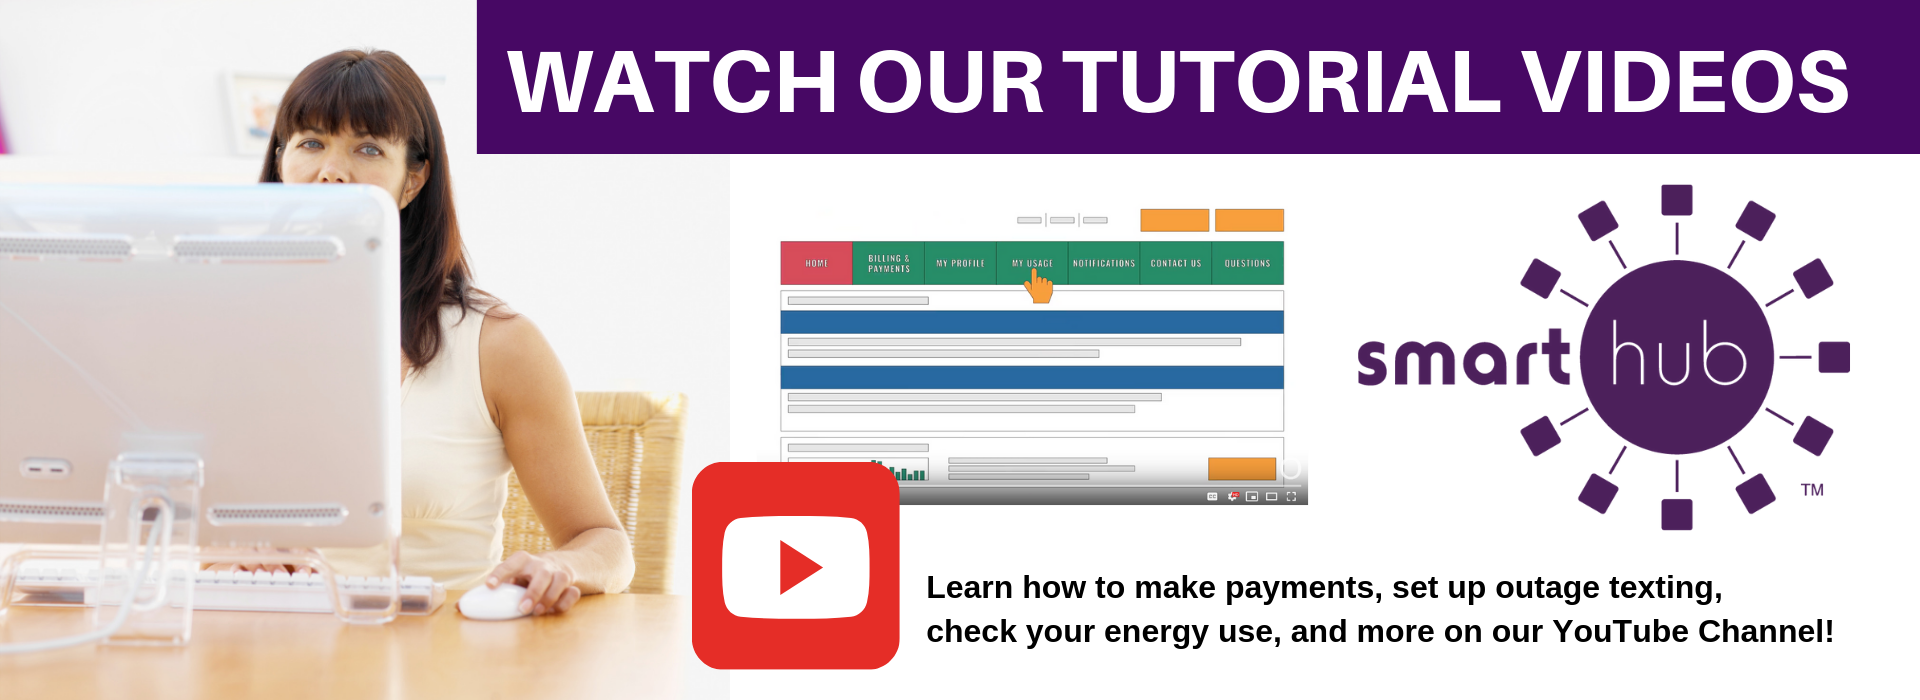 Learn how to fully utilize SmartHub with our tutorial videos!